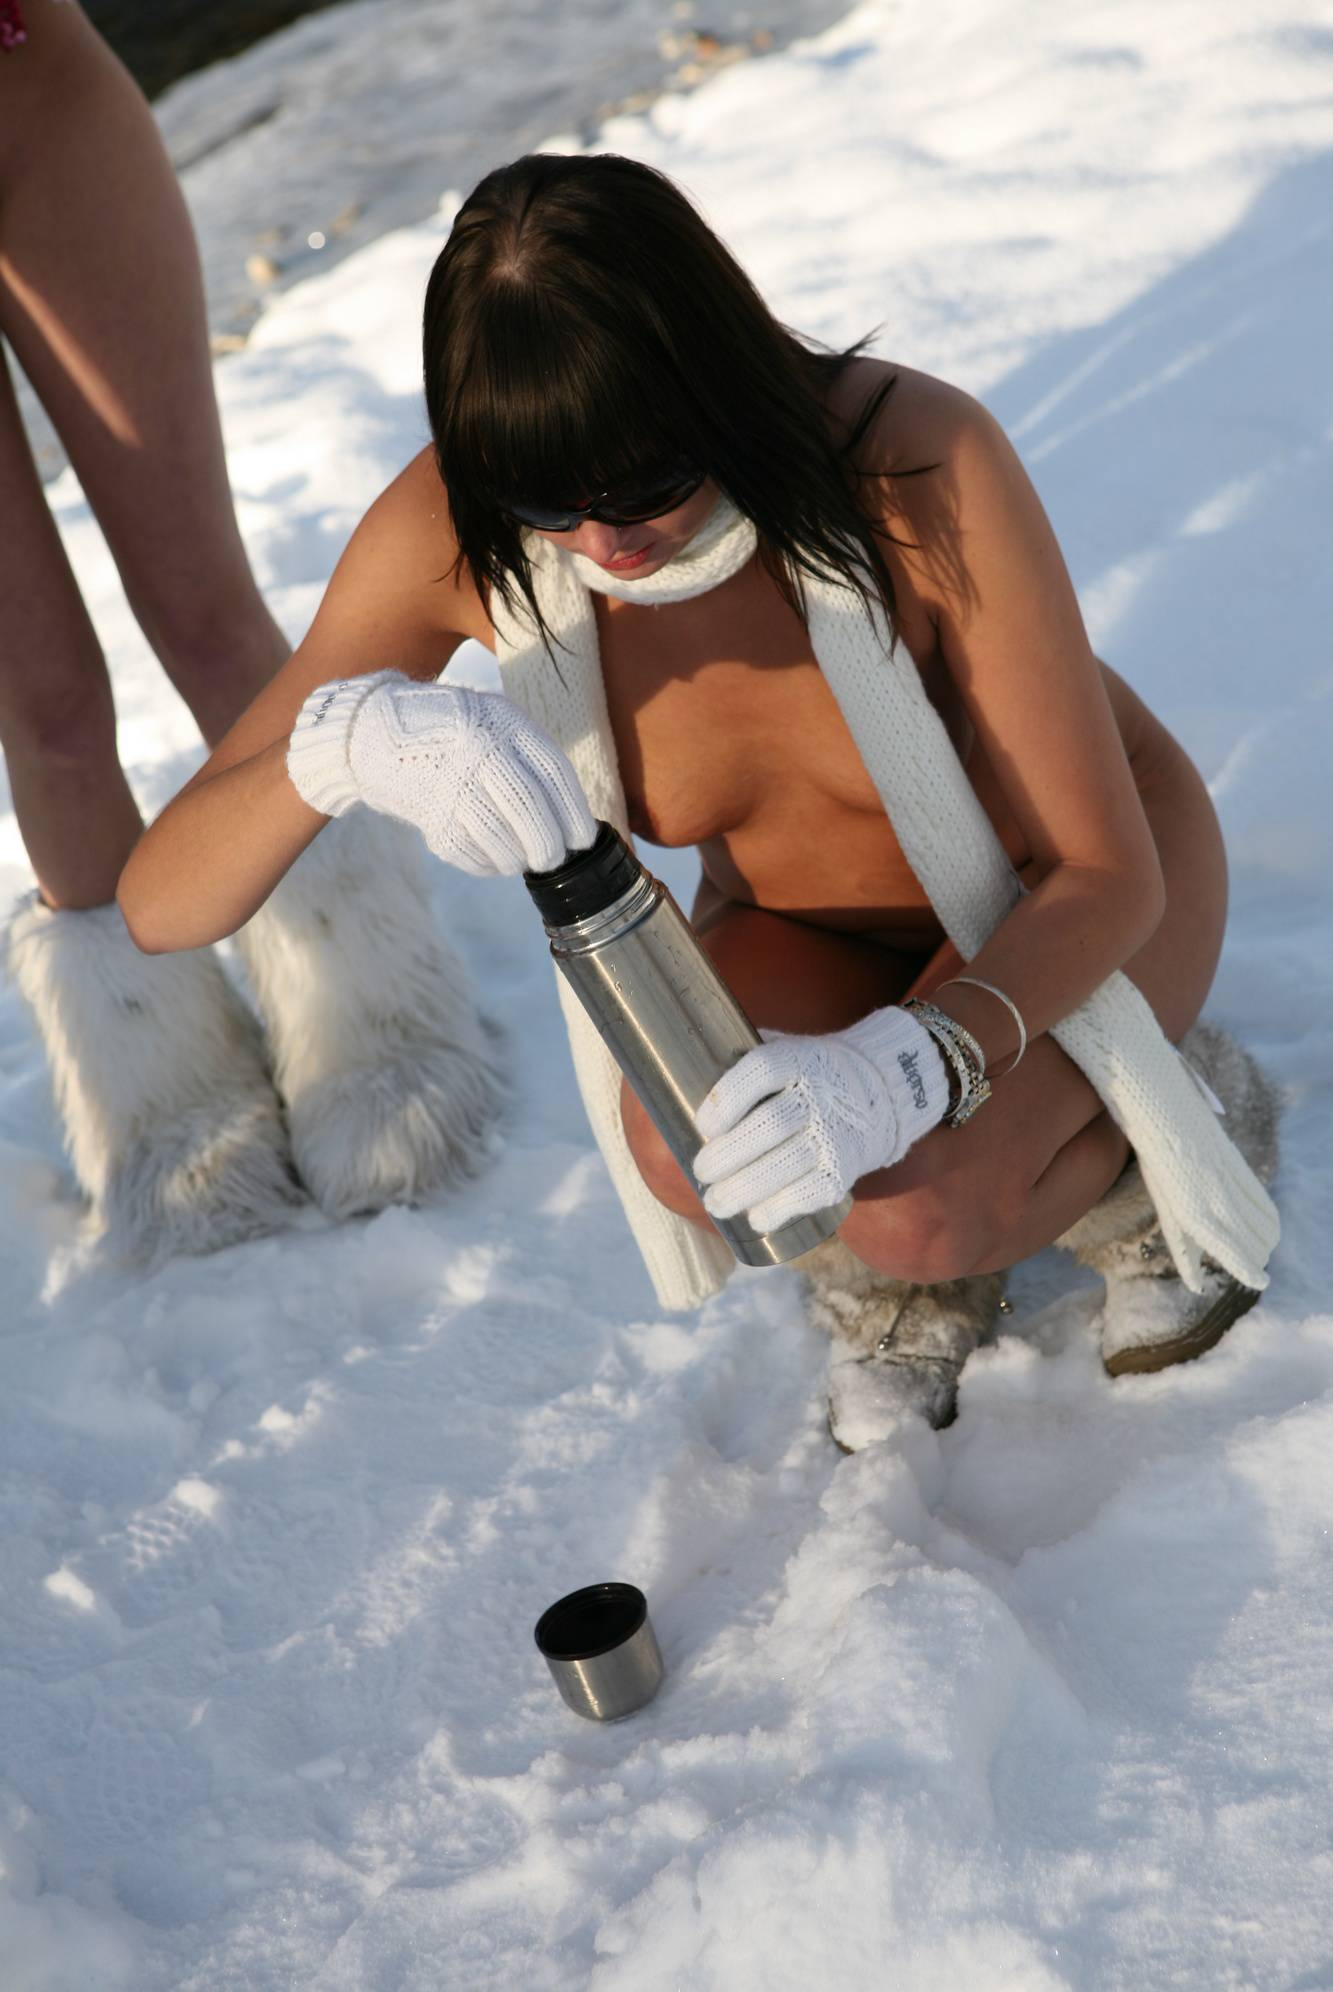 Nudist Pictures Snow Day Fire Drinks - 1